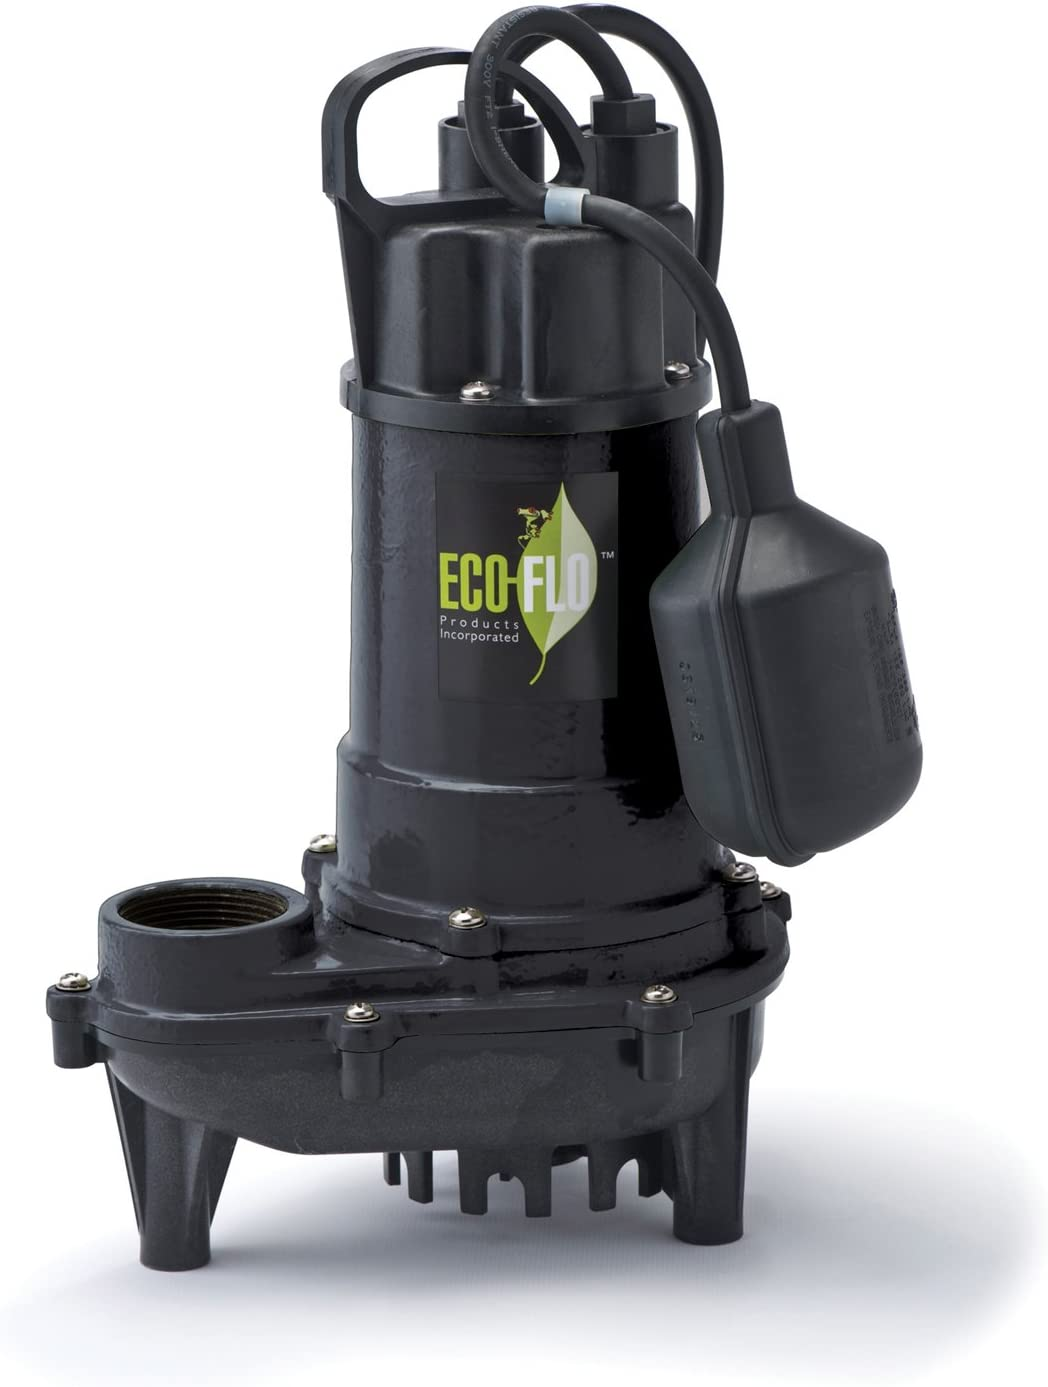 ECO-FLO Products ECD33W Cast Iron Sump Pump with Wide Angle Switch, 1/3 HP, 3,300 GPH